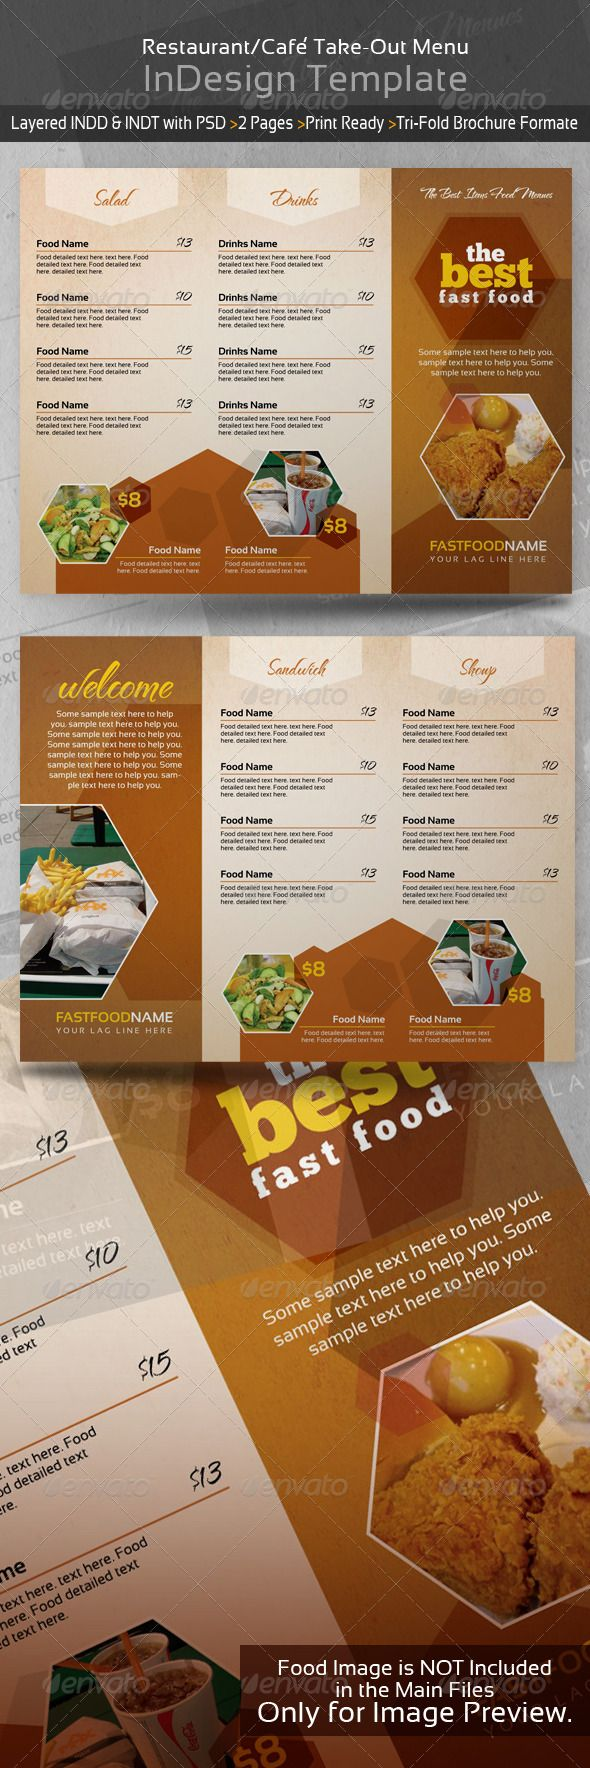 restaurant cafe take out menu template menu